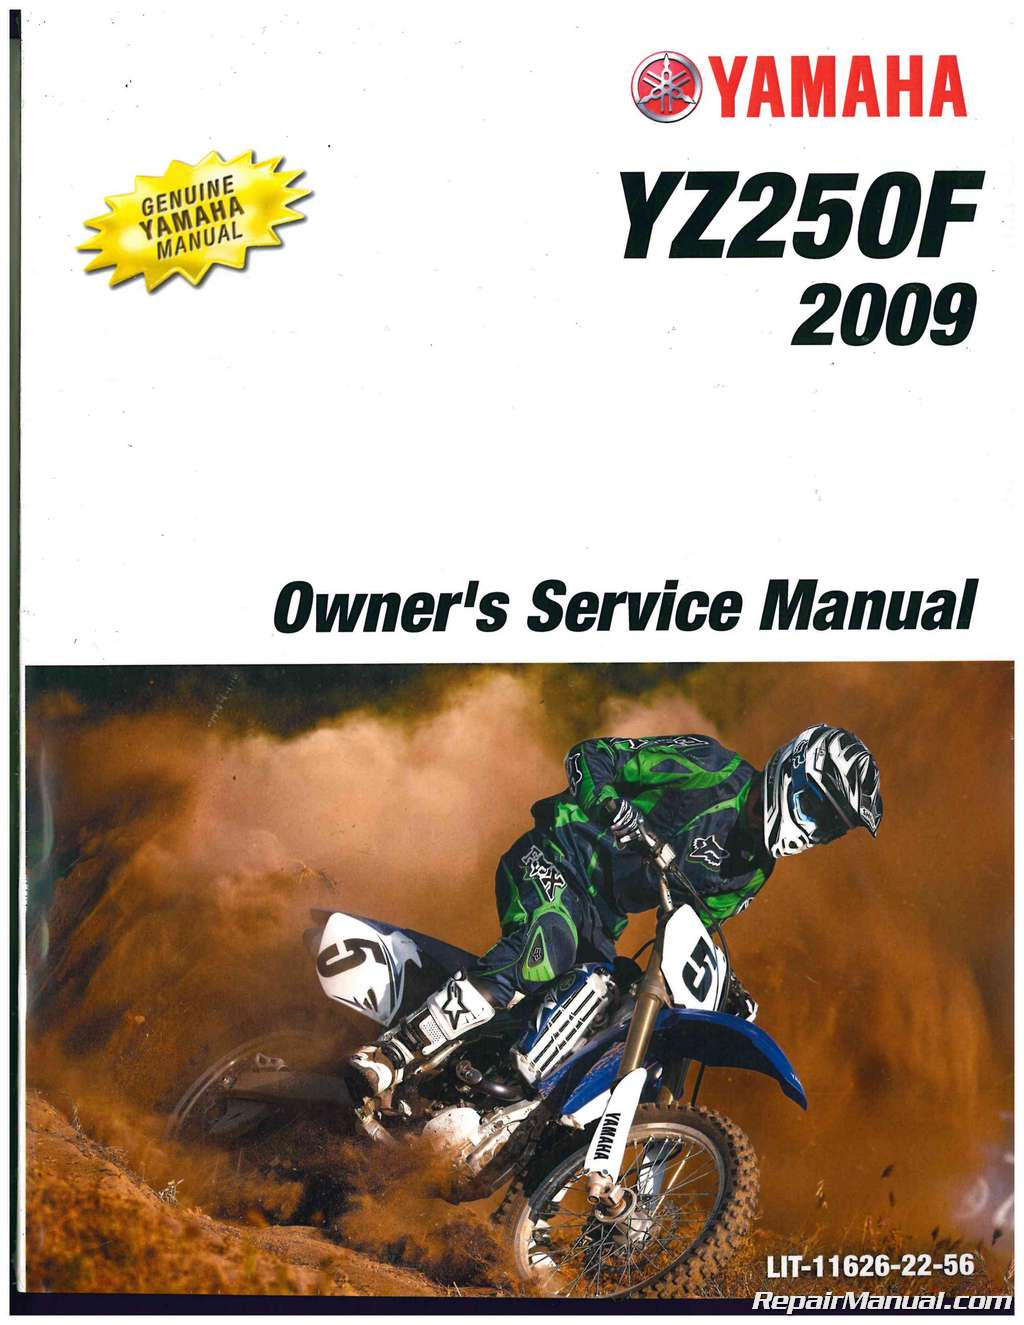 2009 yamaha yz250f owners motorcycle service manual rh repairmanual com 2009 yamaha yz 250 f service manual pdf 2009 yamaha yz250 service manual